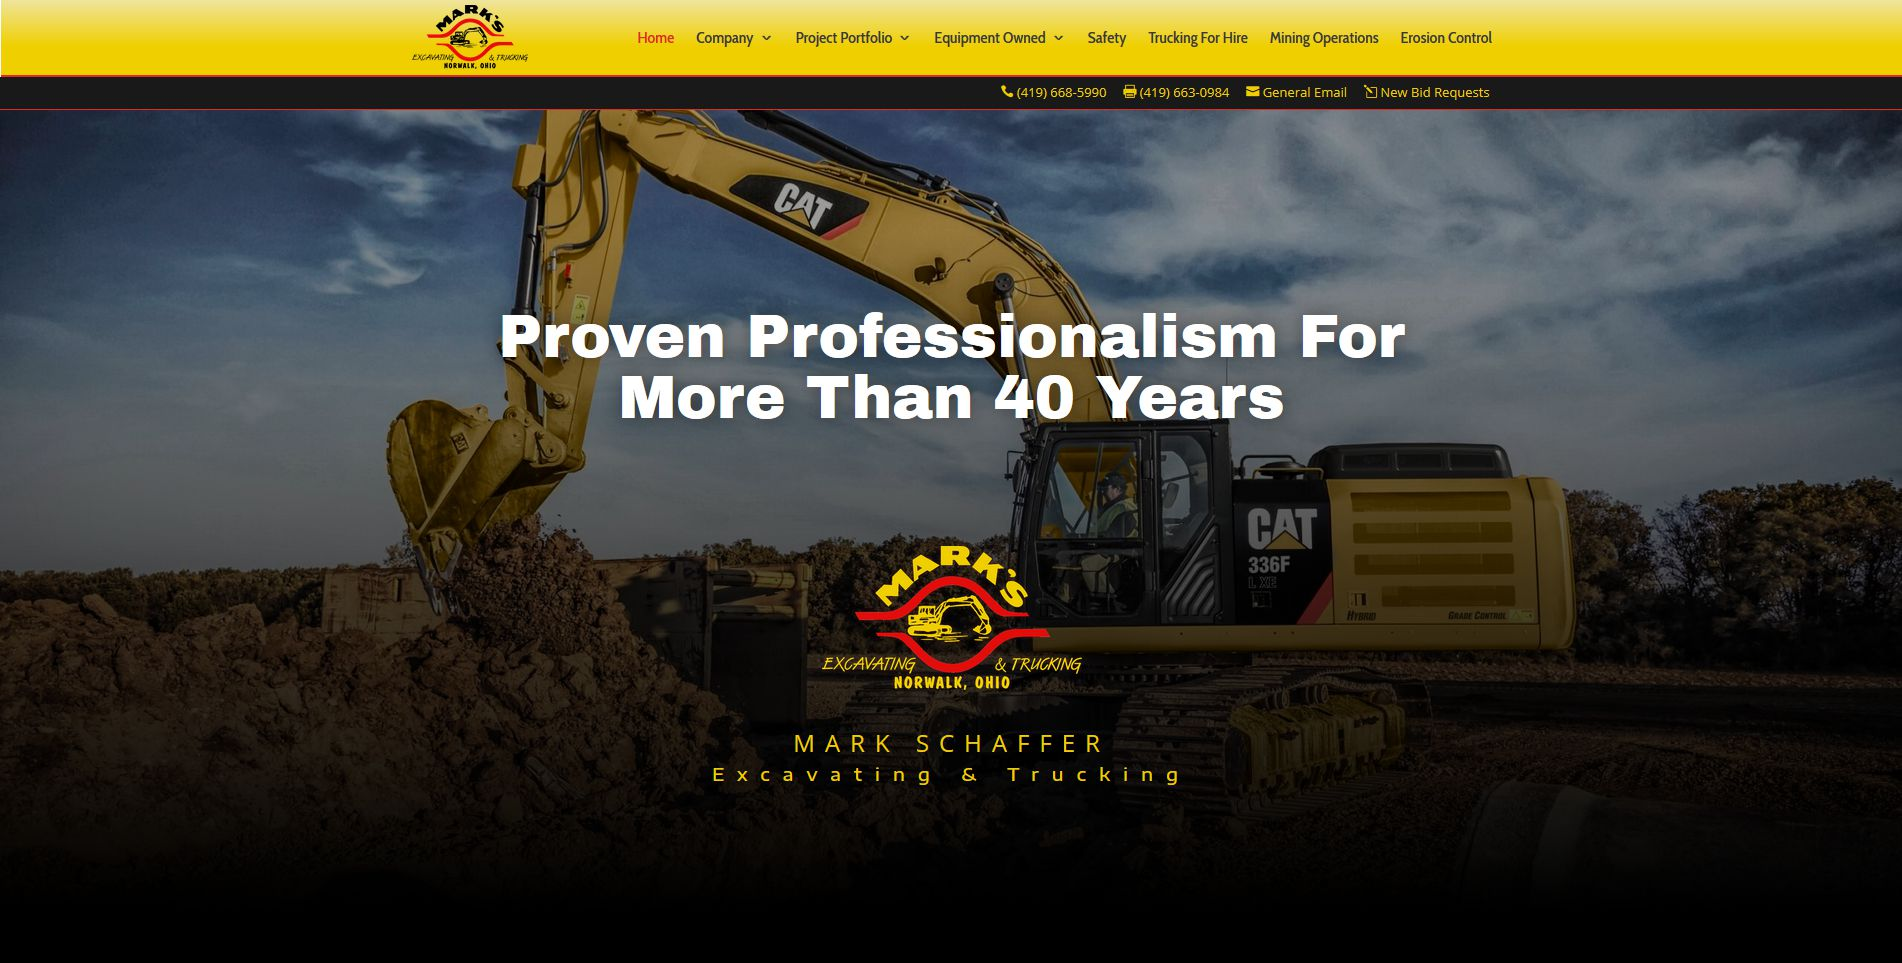 Screen capture of the Mark Schaffer Excavating & Trucking website home page.